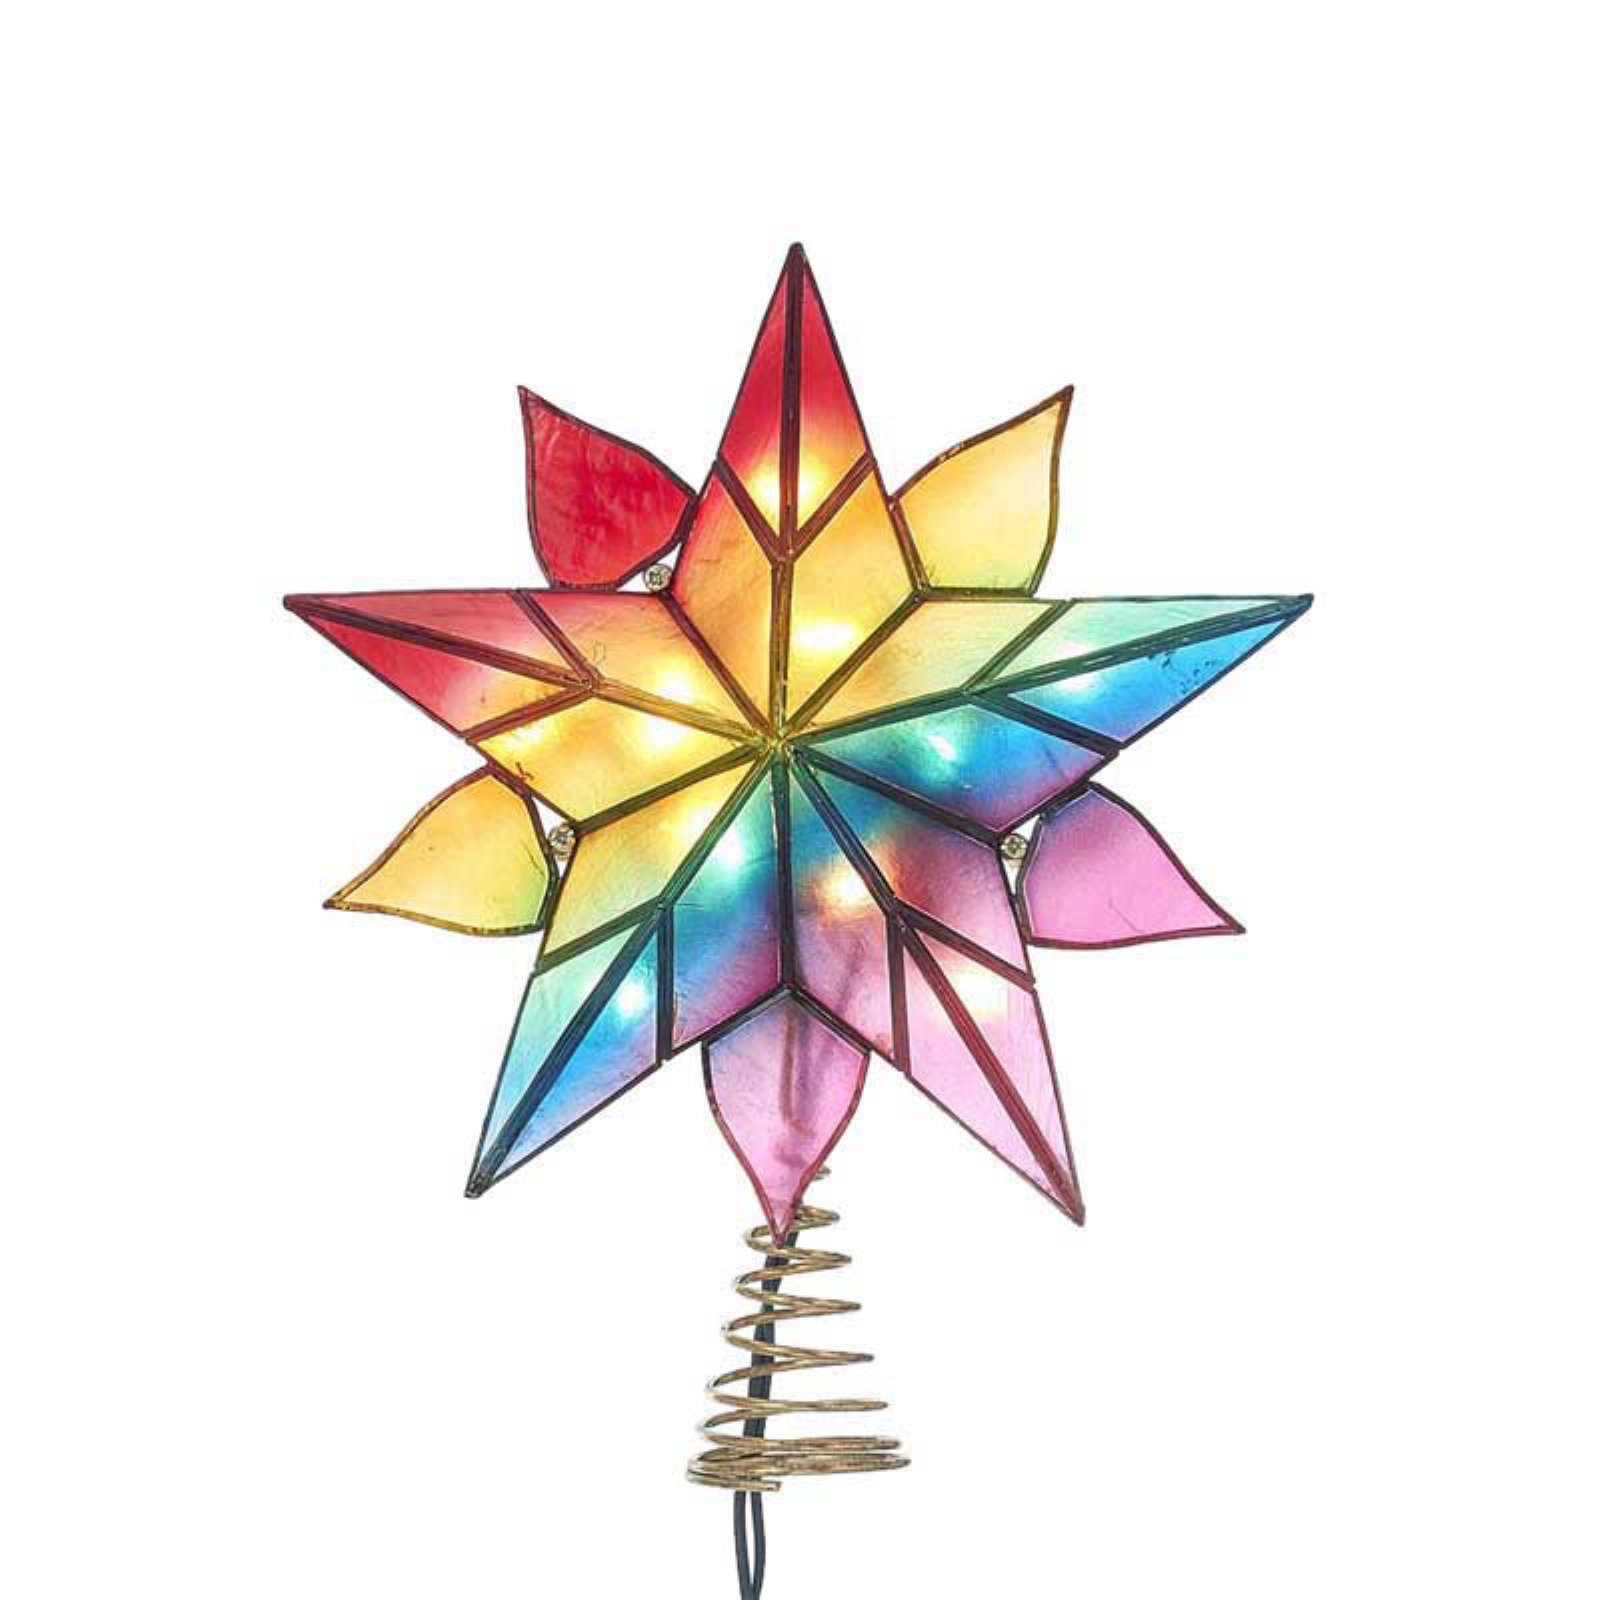 Kurt S. Adler 10 Light Capiz Star Tree Topper